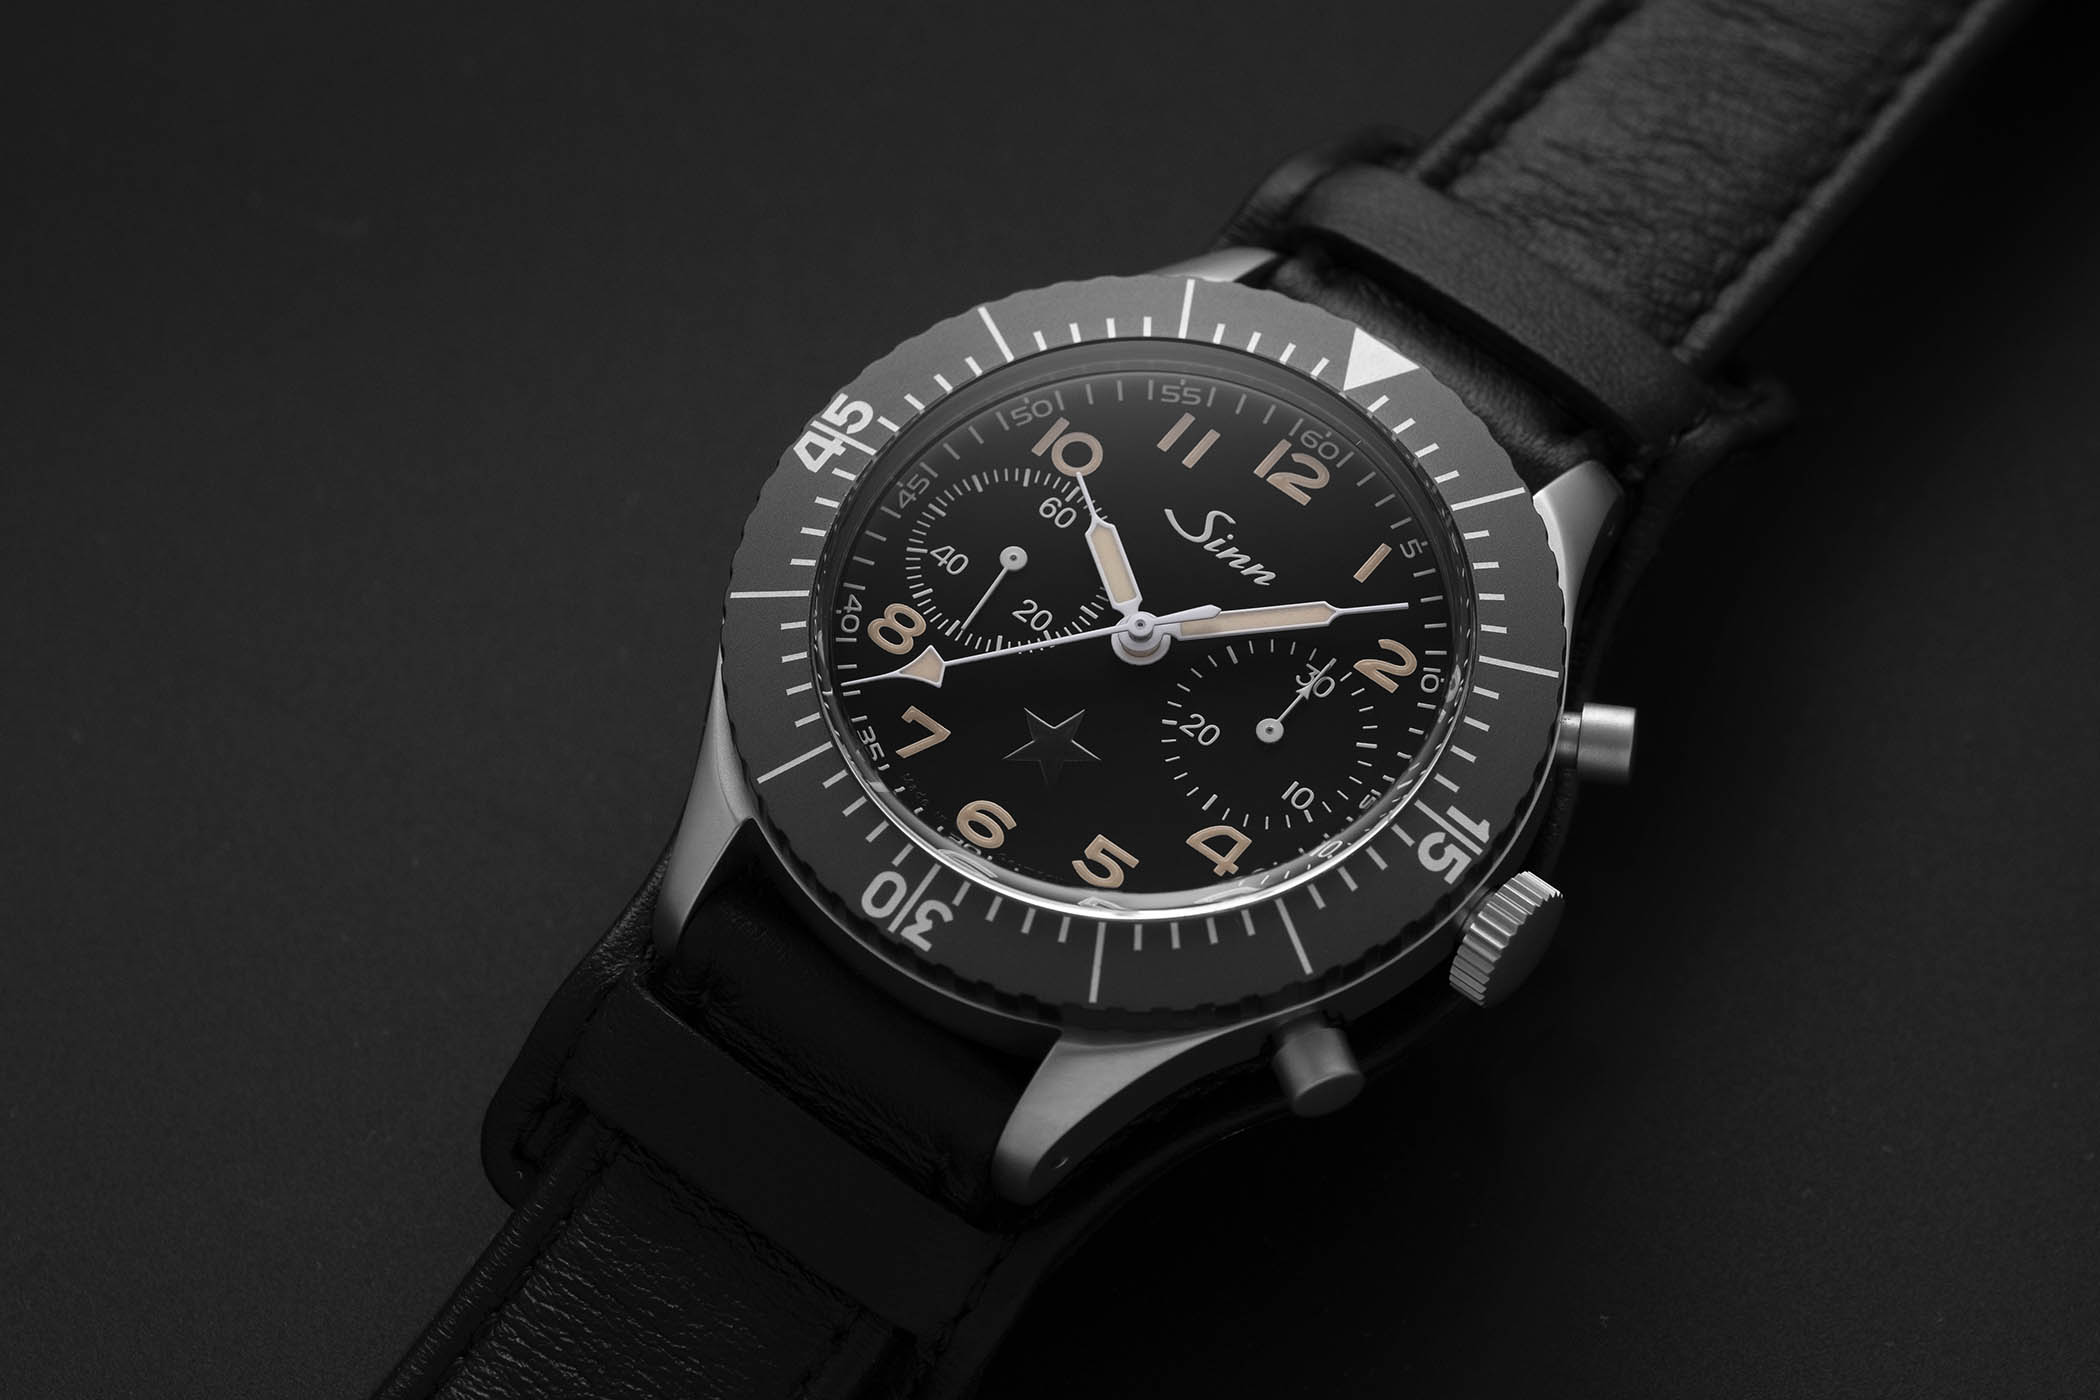 Sinn x The Rake and Revolution 155 Bundeswehr Dark Star